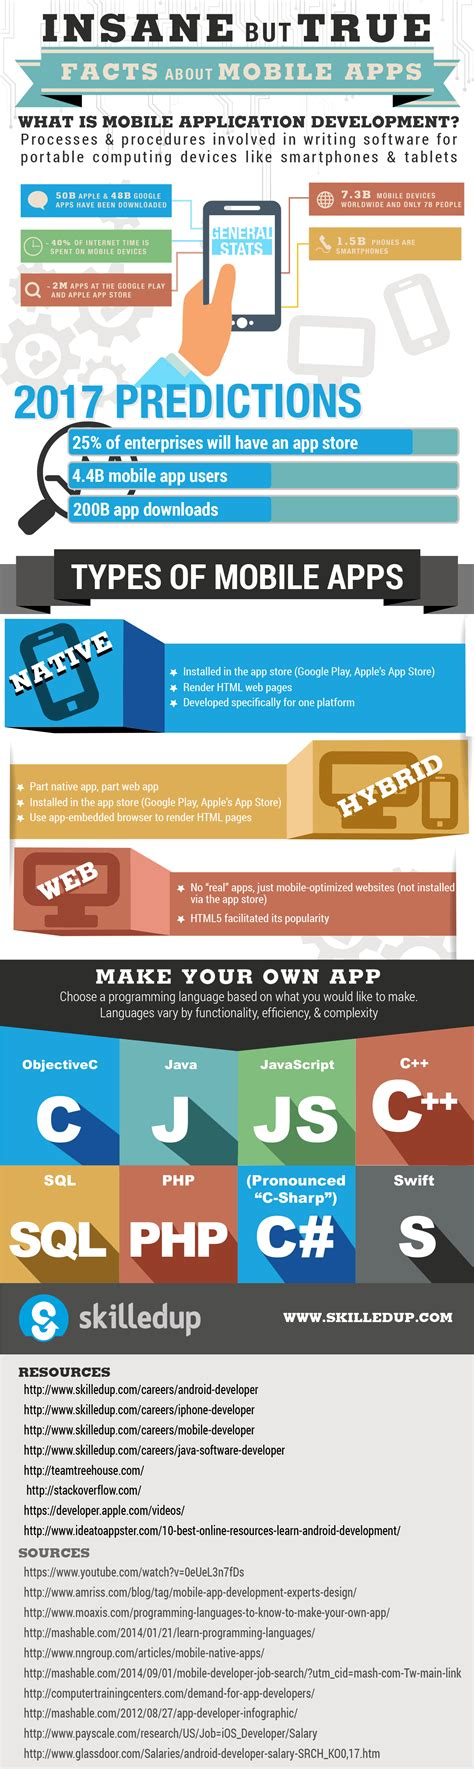 best mobile apps facts about mobile apps infographic best infographics